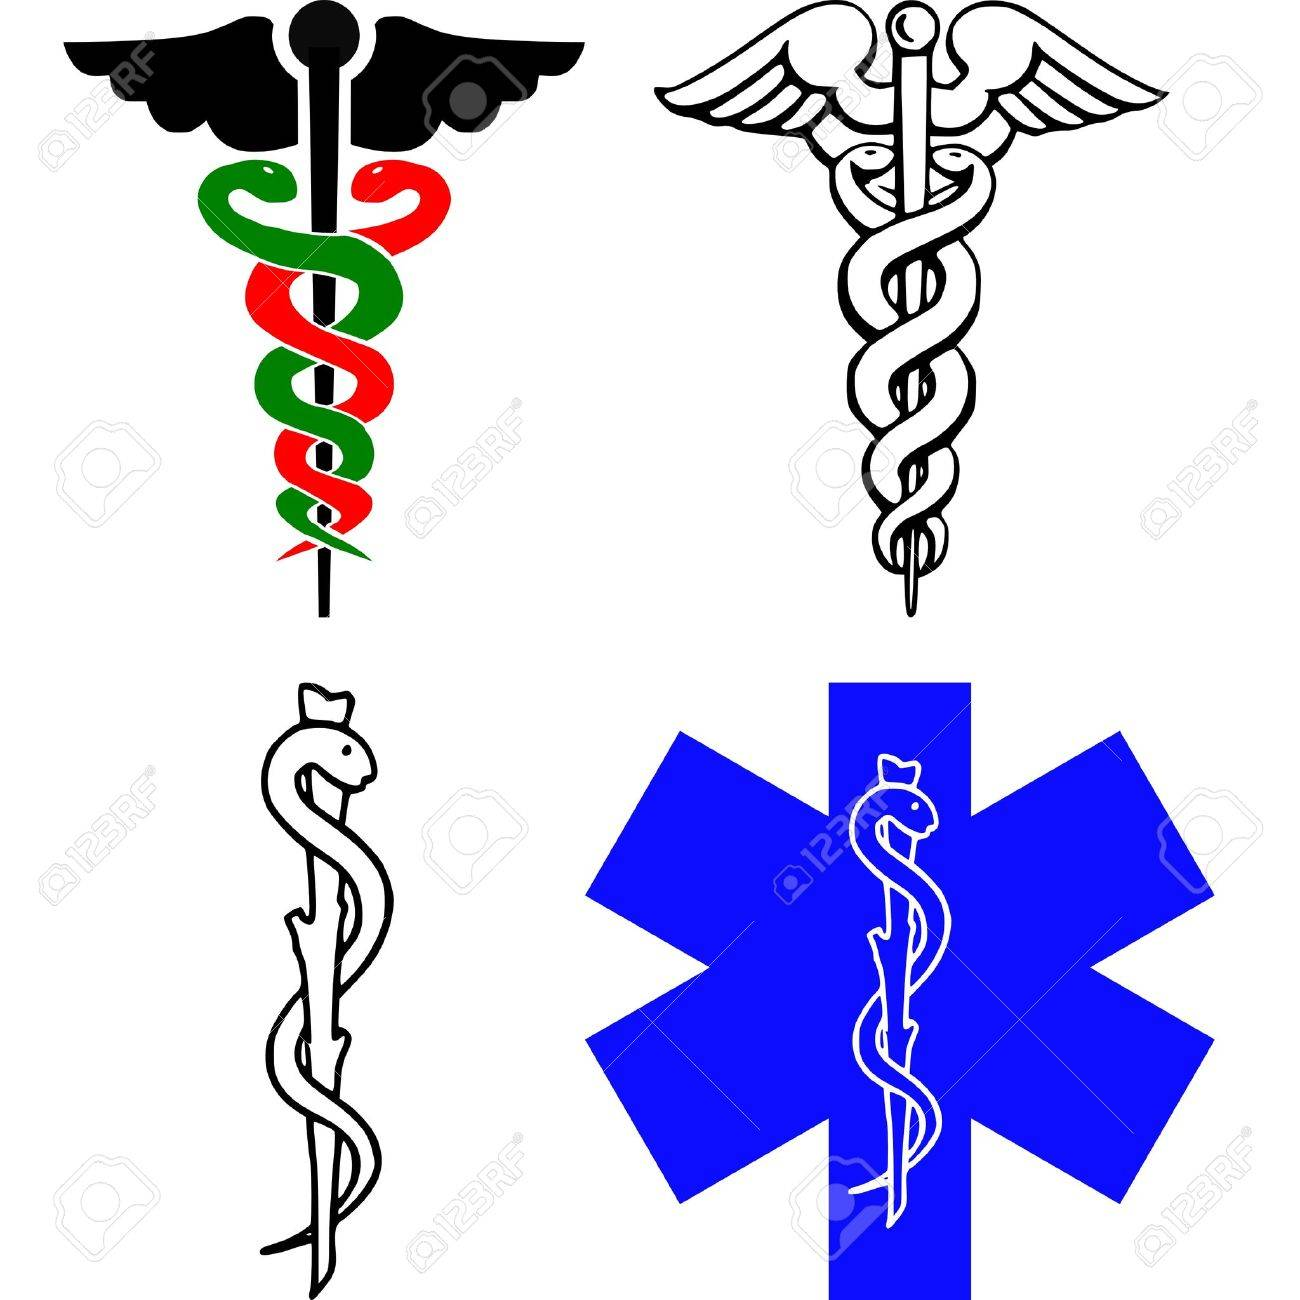 258 Caduceus Medical Logo Cliparts, Stock Vector And Royalty Free ...